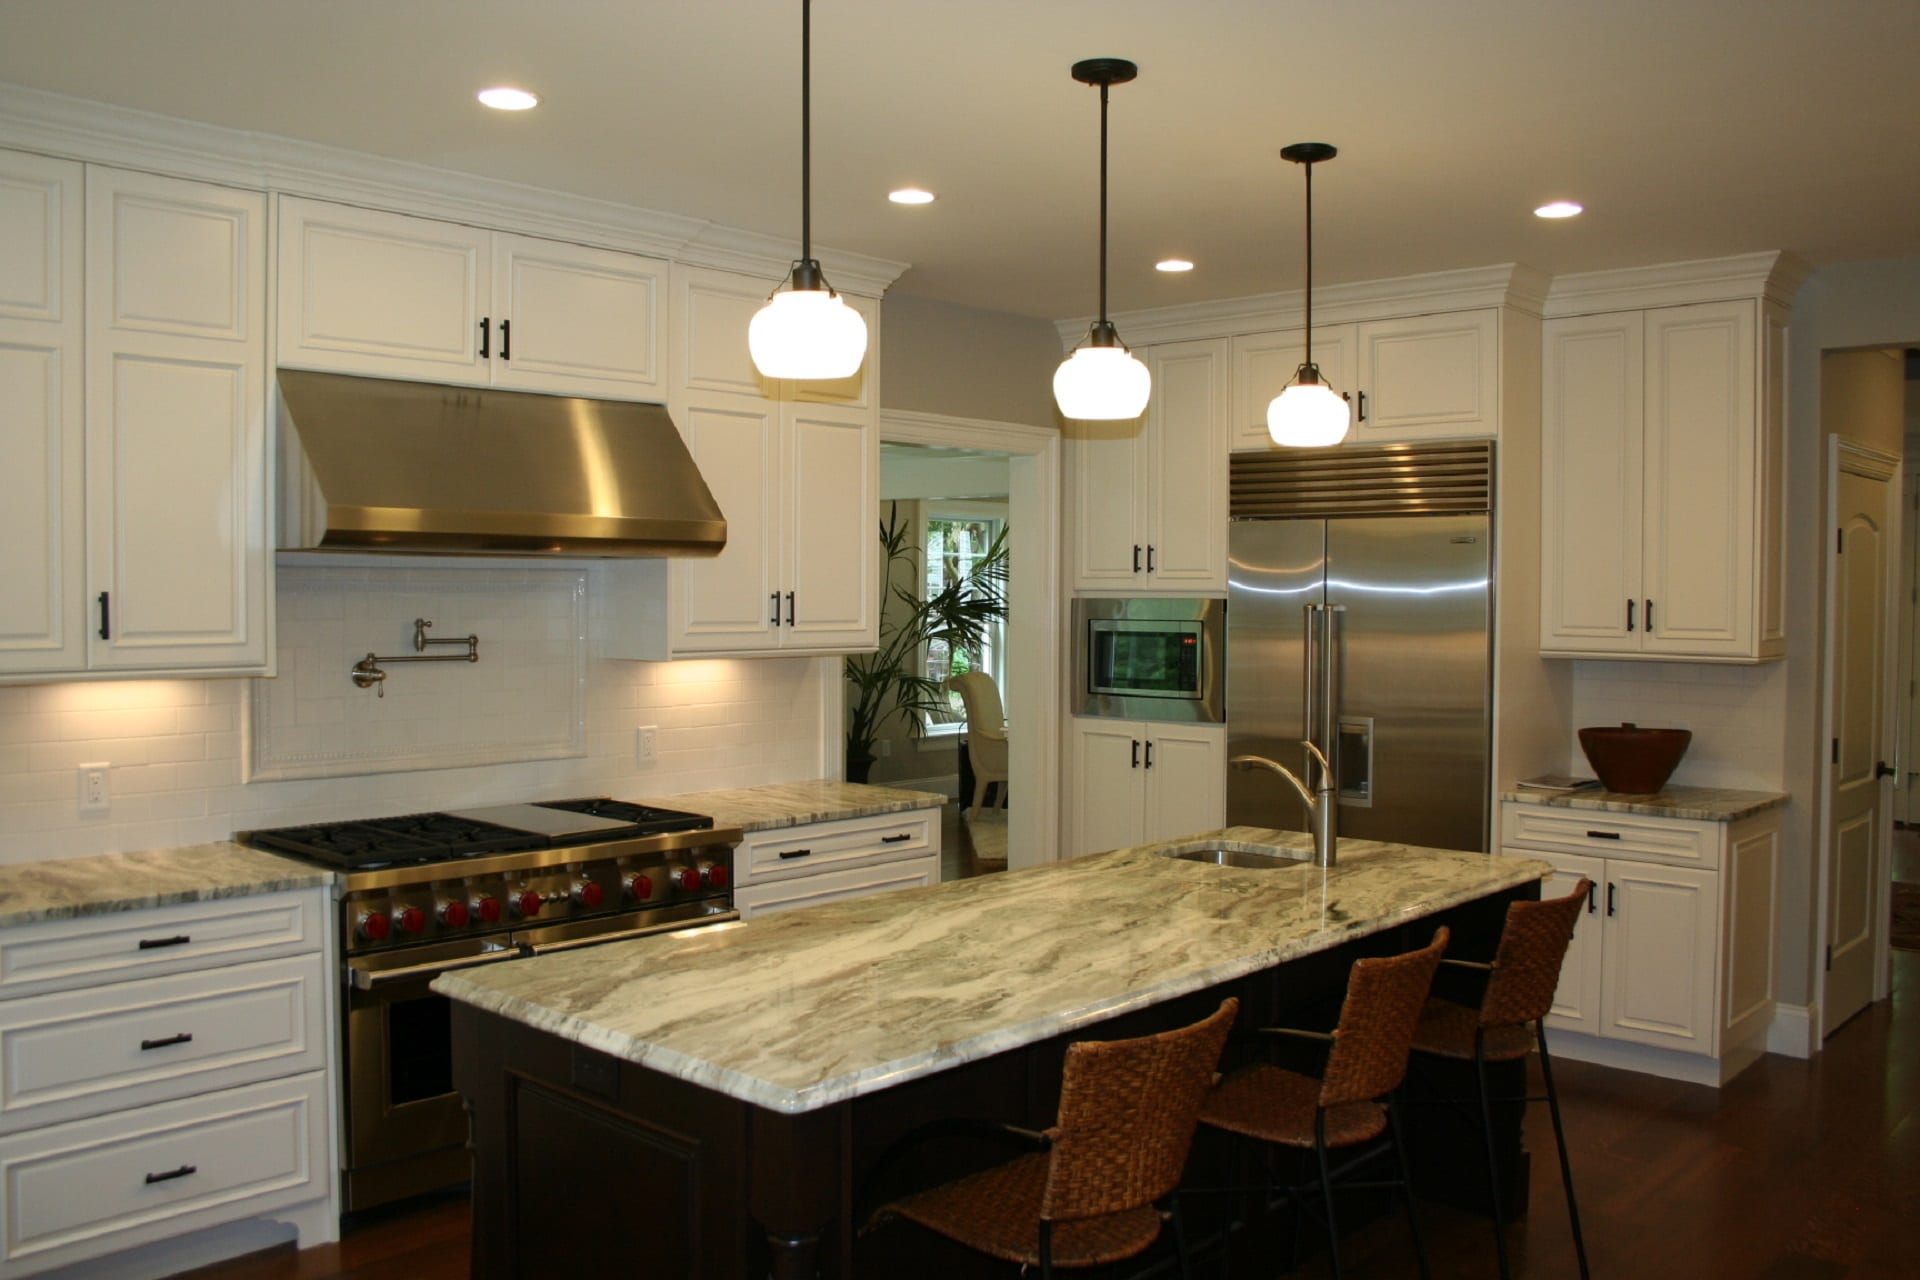 install kitchen island valance curtains for cabinets by curtis cabinetry -